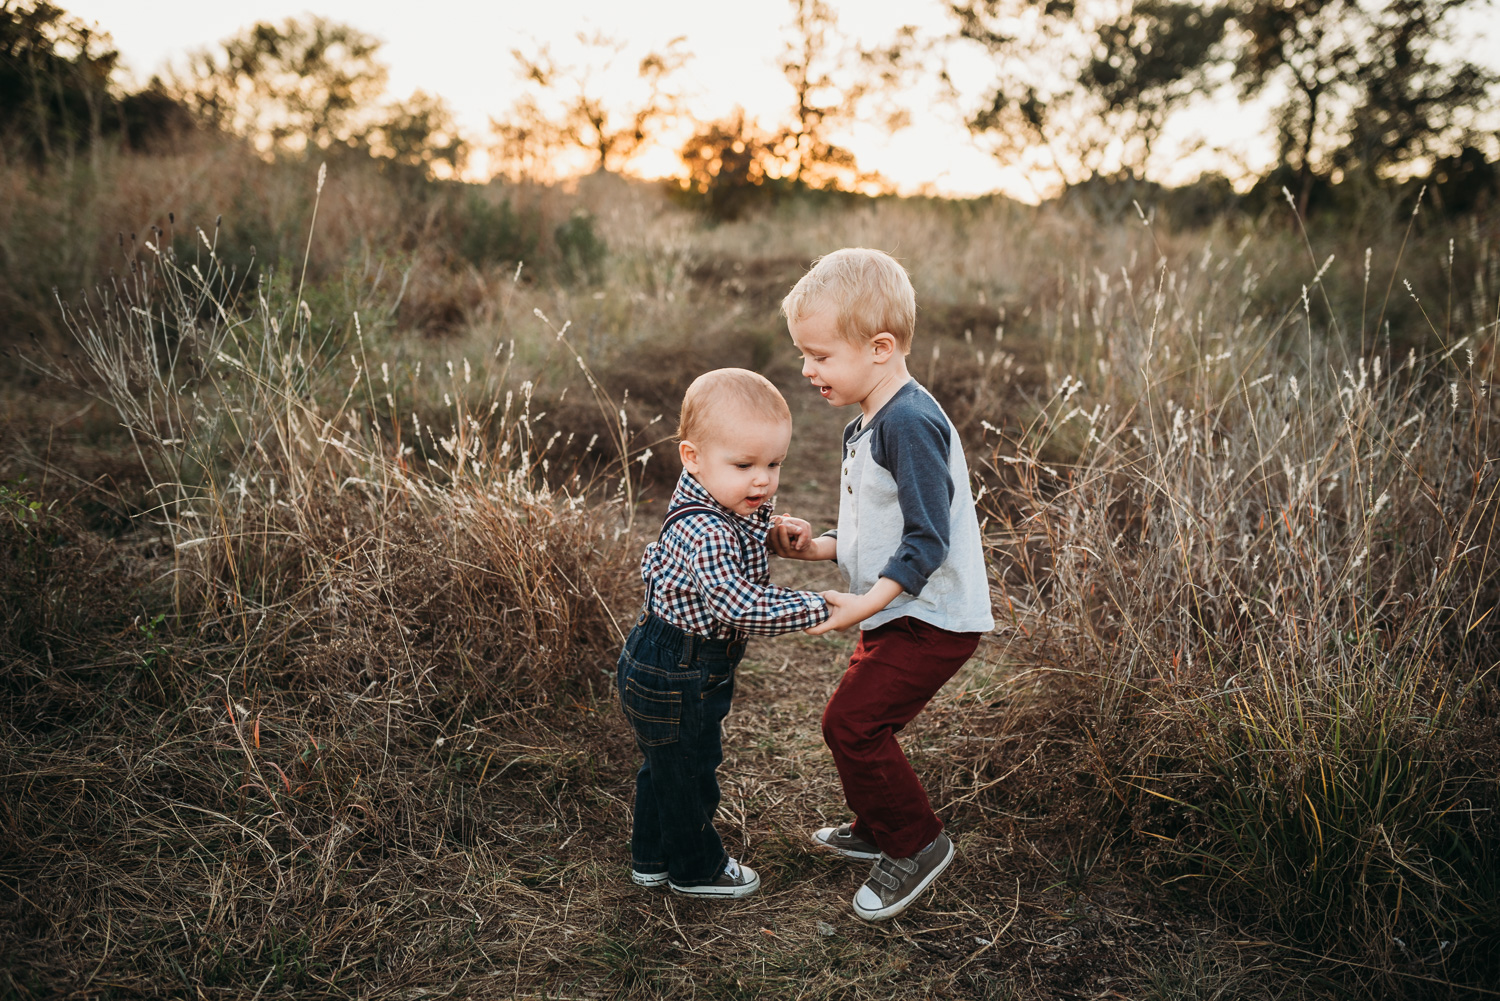 Abby Kennan Photography_San Antonio Family Photographer_San Antonio Photographer_Abby Kennan_San Antonio Child Photographer_San Antonio Lifestyle Family Photographer_Lifestyle Photography_San Antonio-10.jpg